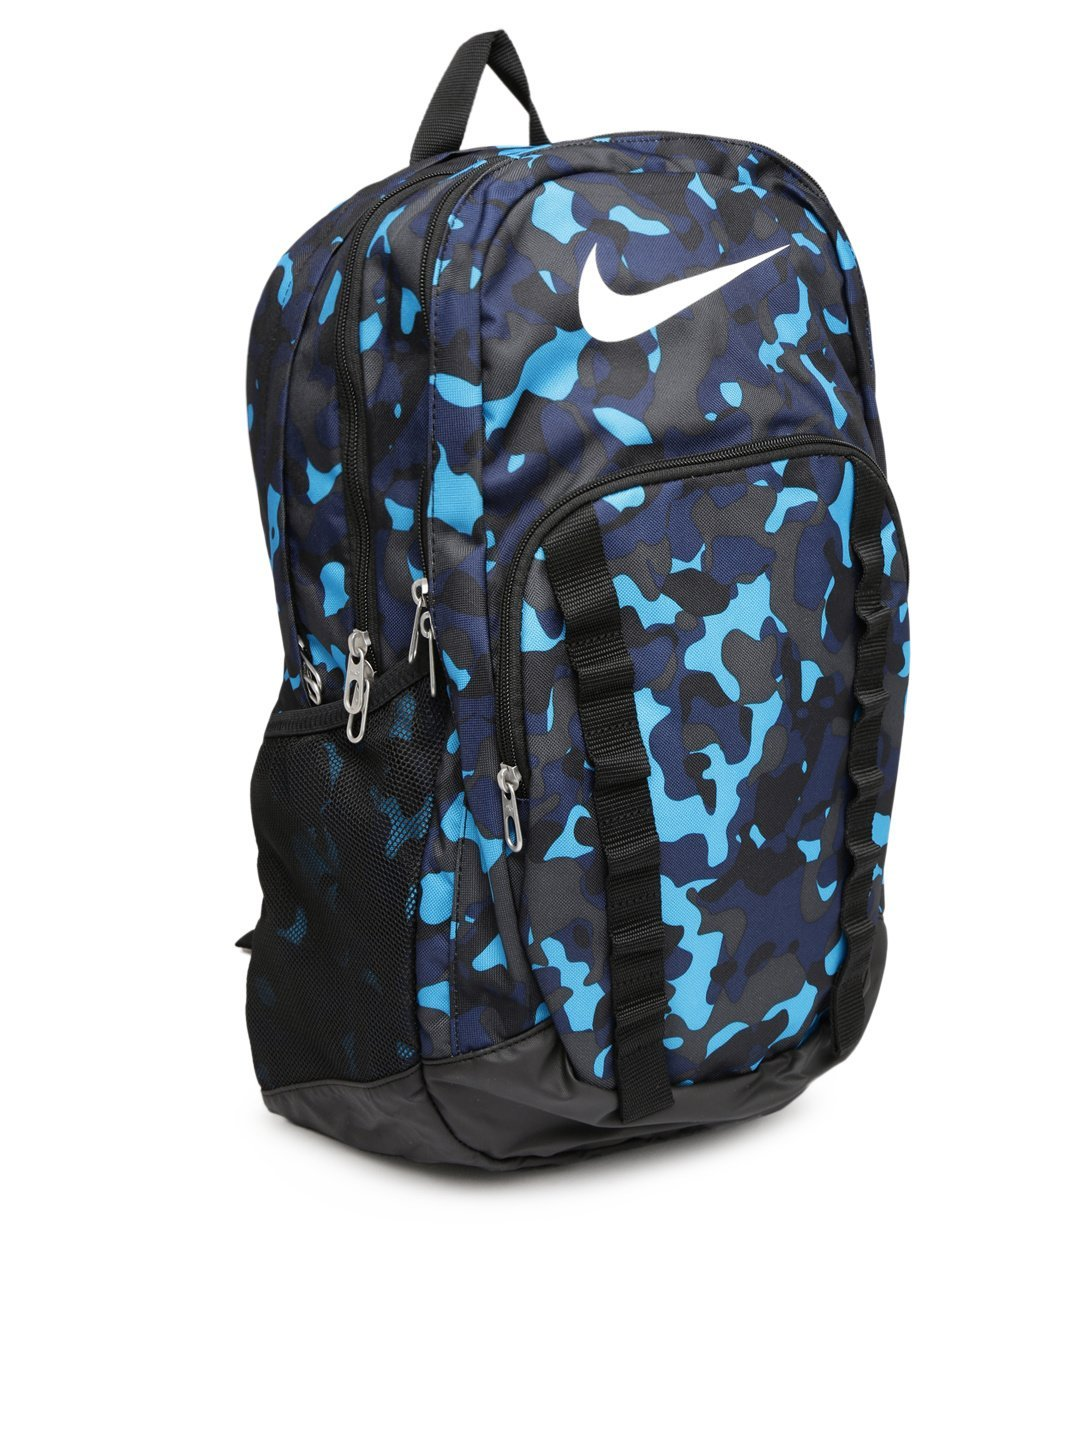 e89f91cb44 Buy Nike Brasilia 7 Graphic Backpack XL Blue Red Camo in Cheap Price ...